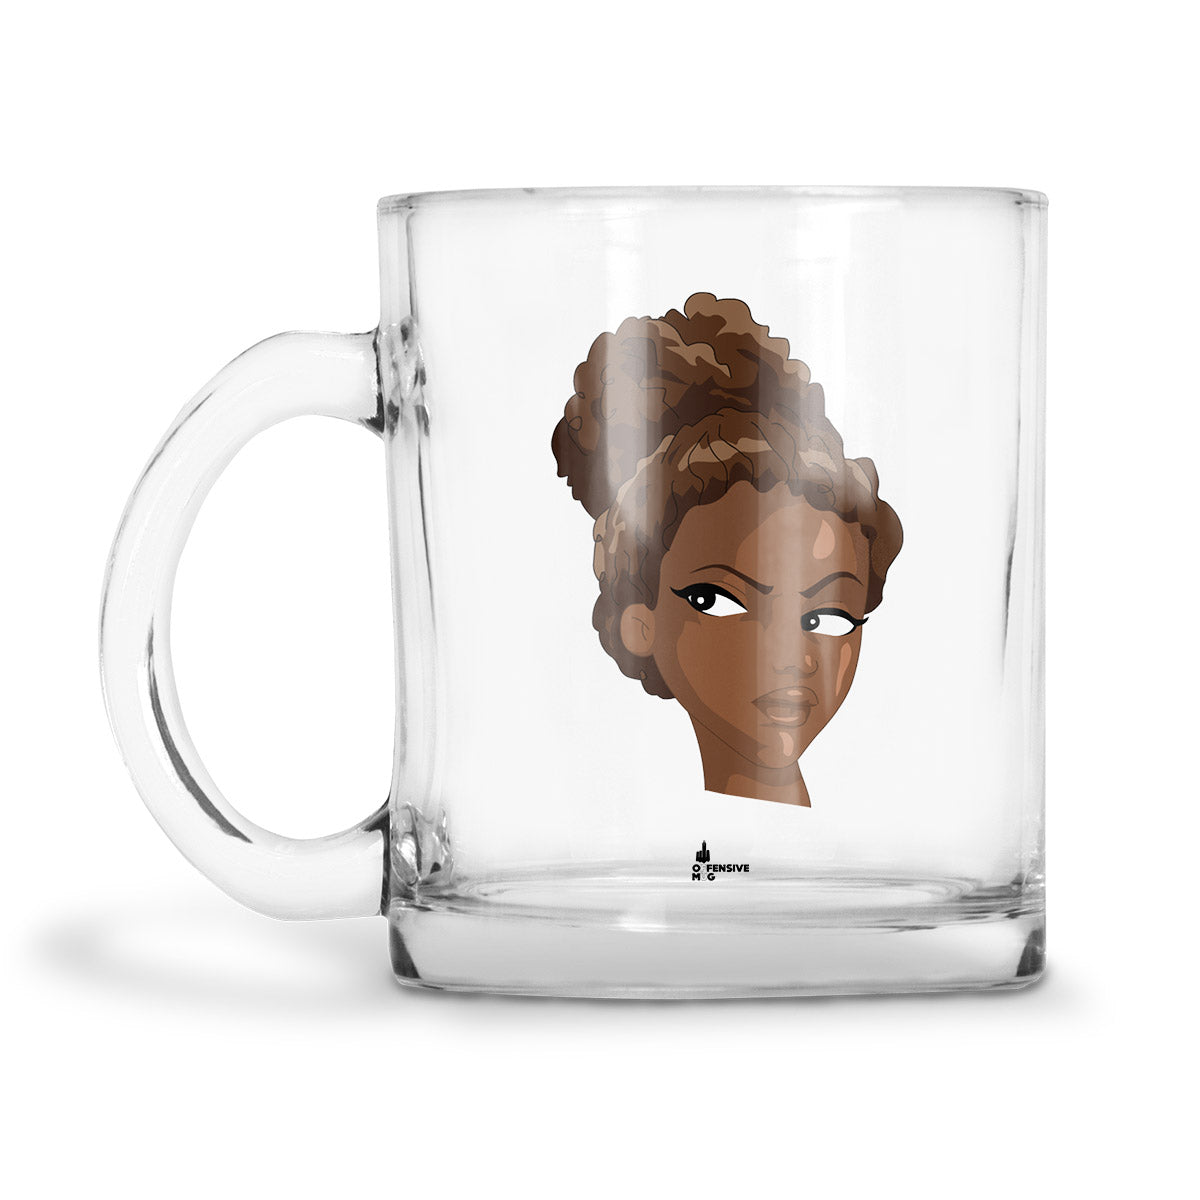 Yvette Glass Mug - Offensive Mug